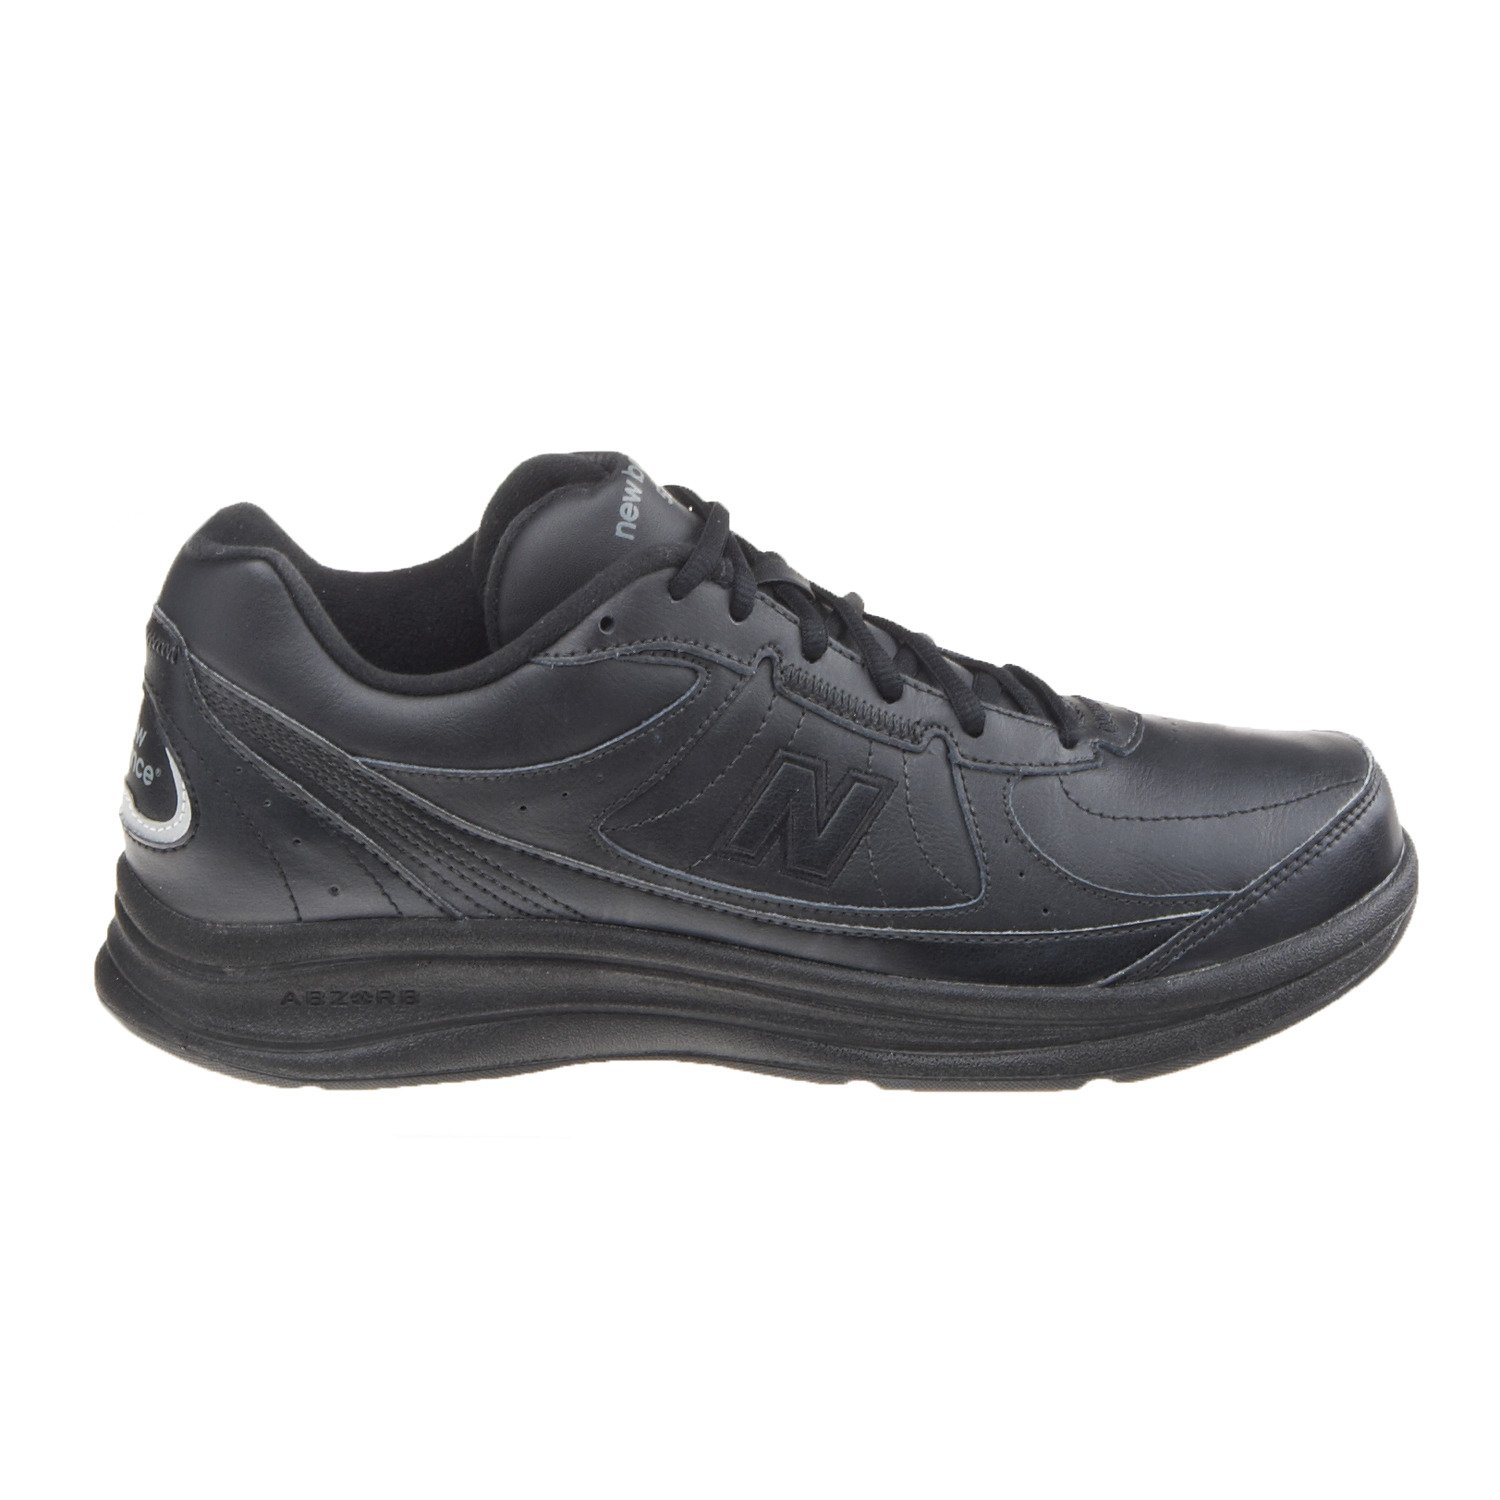 Mens Walking Shoes Comfortable Walking Shoes For Men Academy